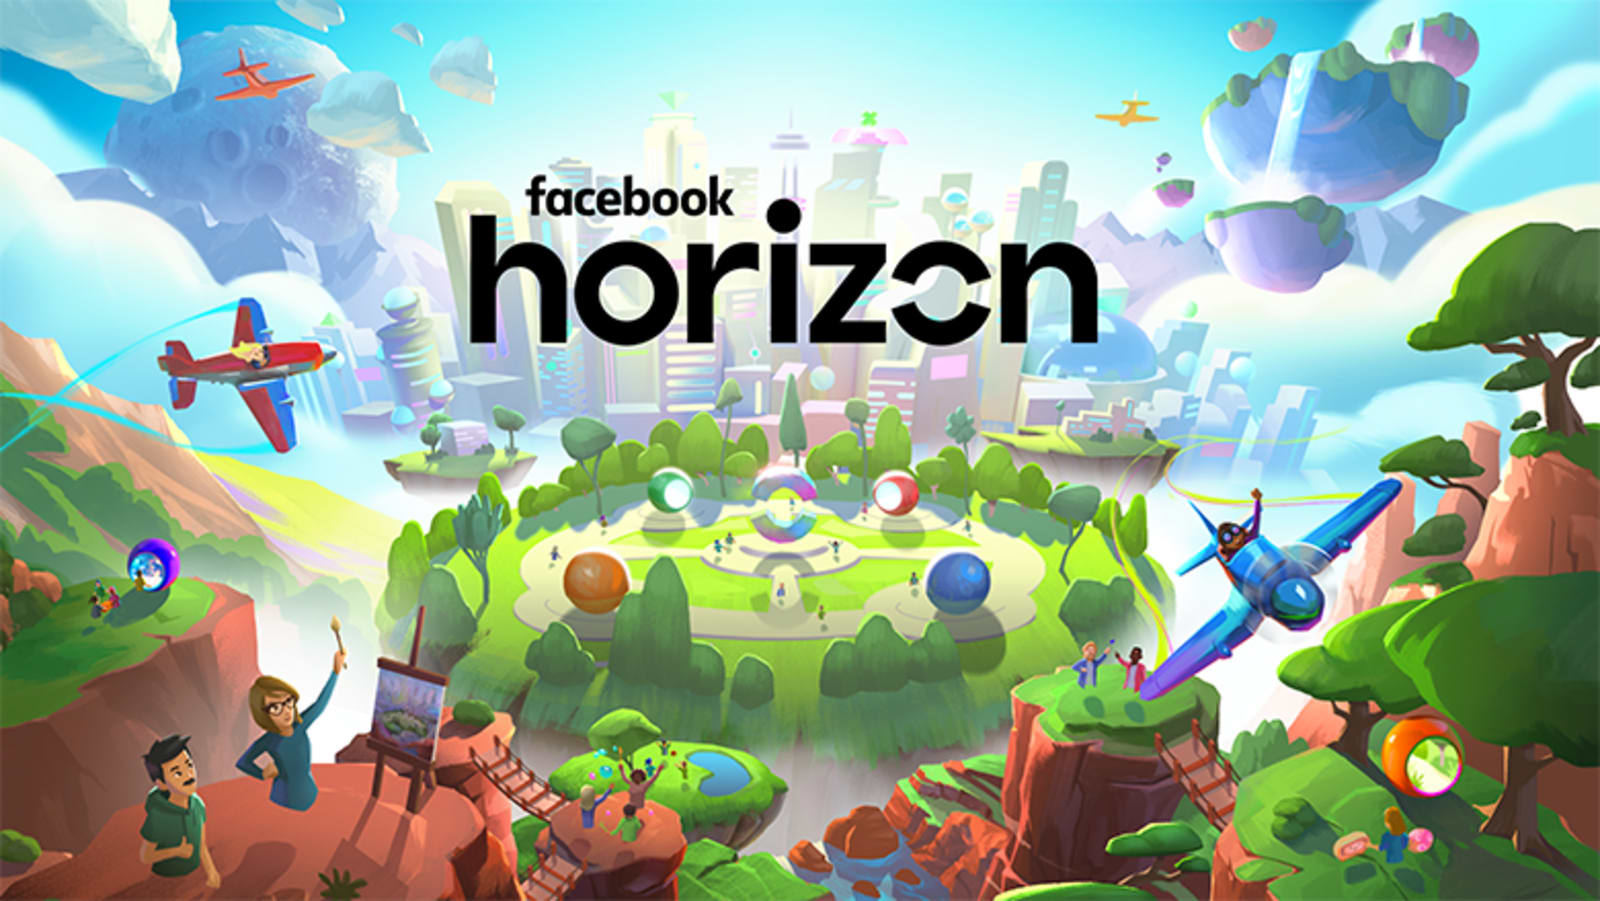 Best Oculus Rift Games 2020.Social Vr World Facebook Horizon Comes To Oculus In 2020